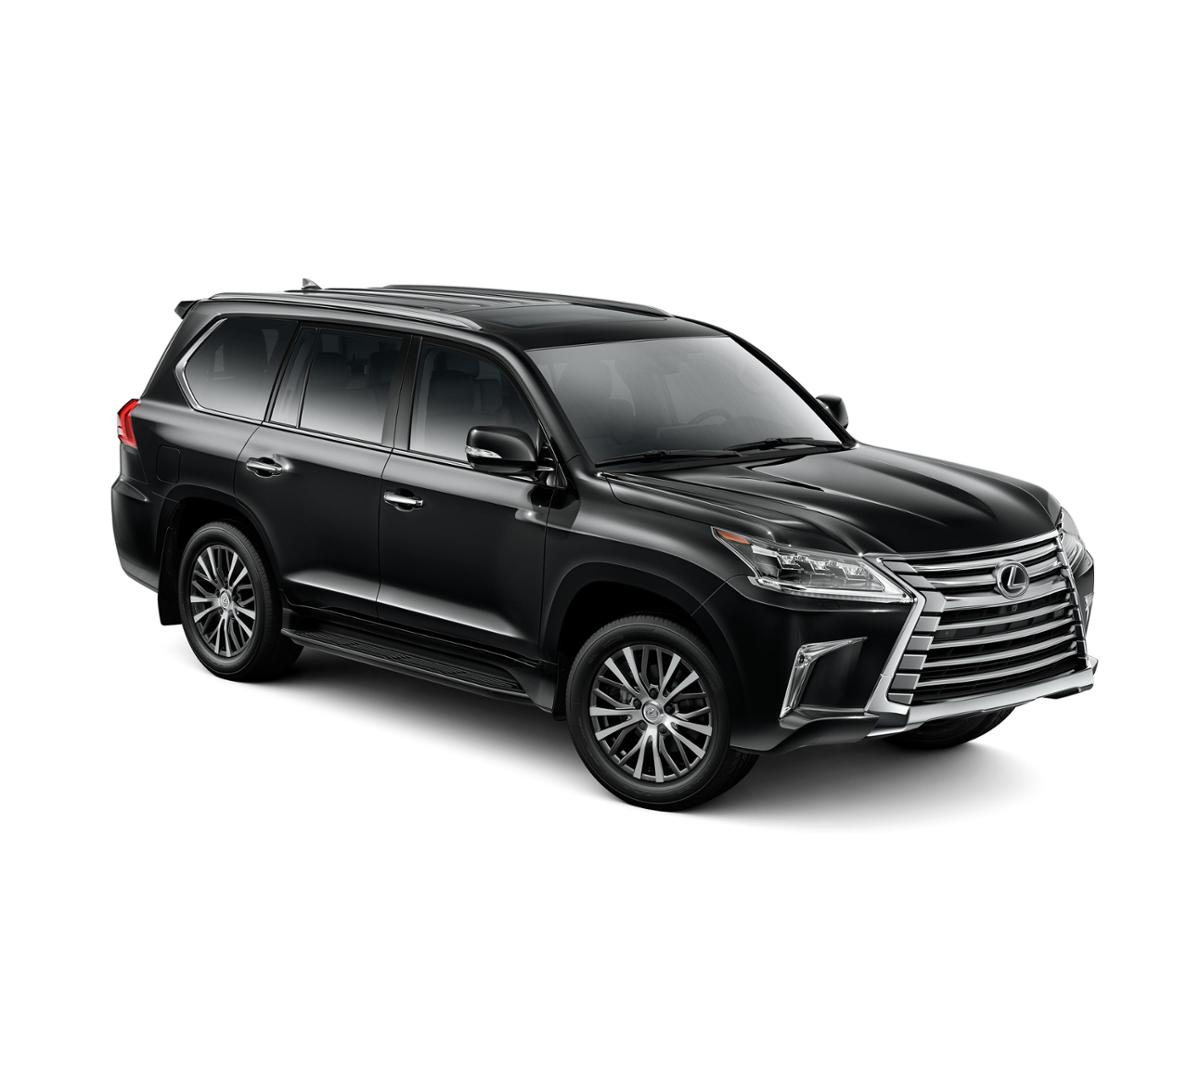 2019 Lexus LX 570 Vehicle Photo in Springfield, MO 65809